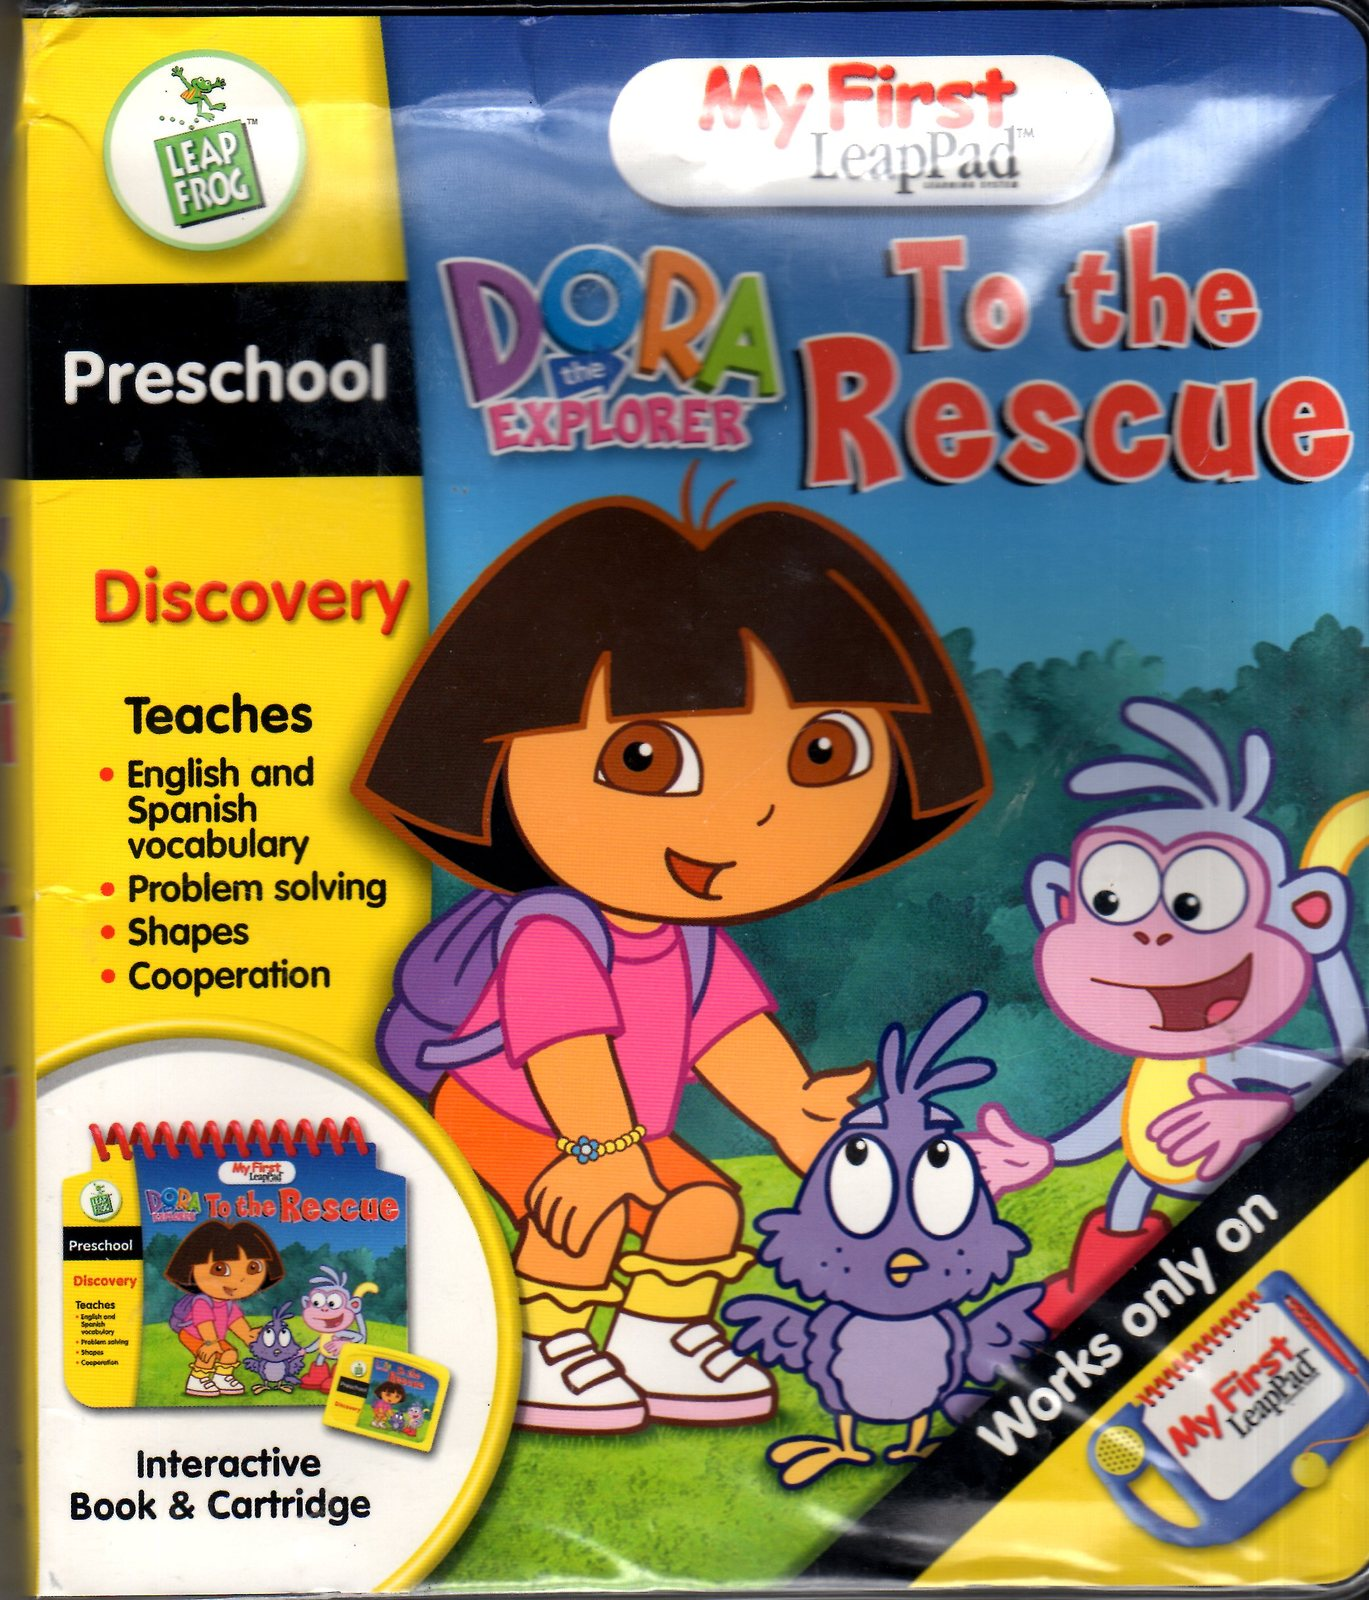 LeapFrog - My First LeapPad -Dora The Explorer To The Rescue